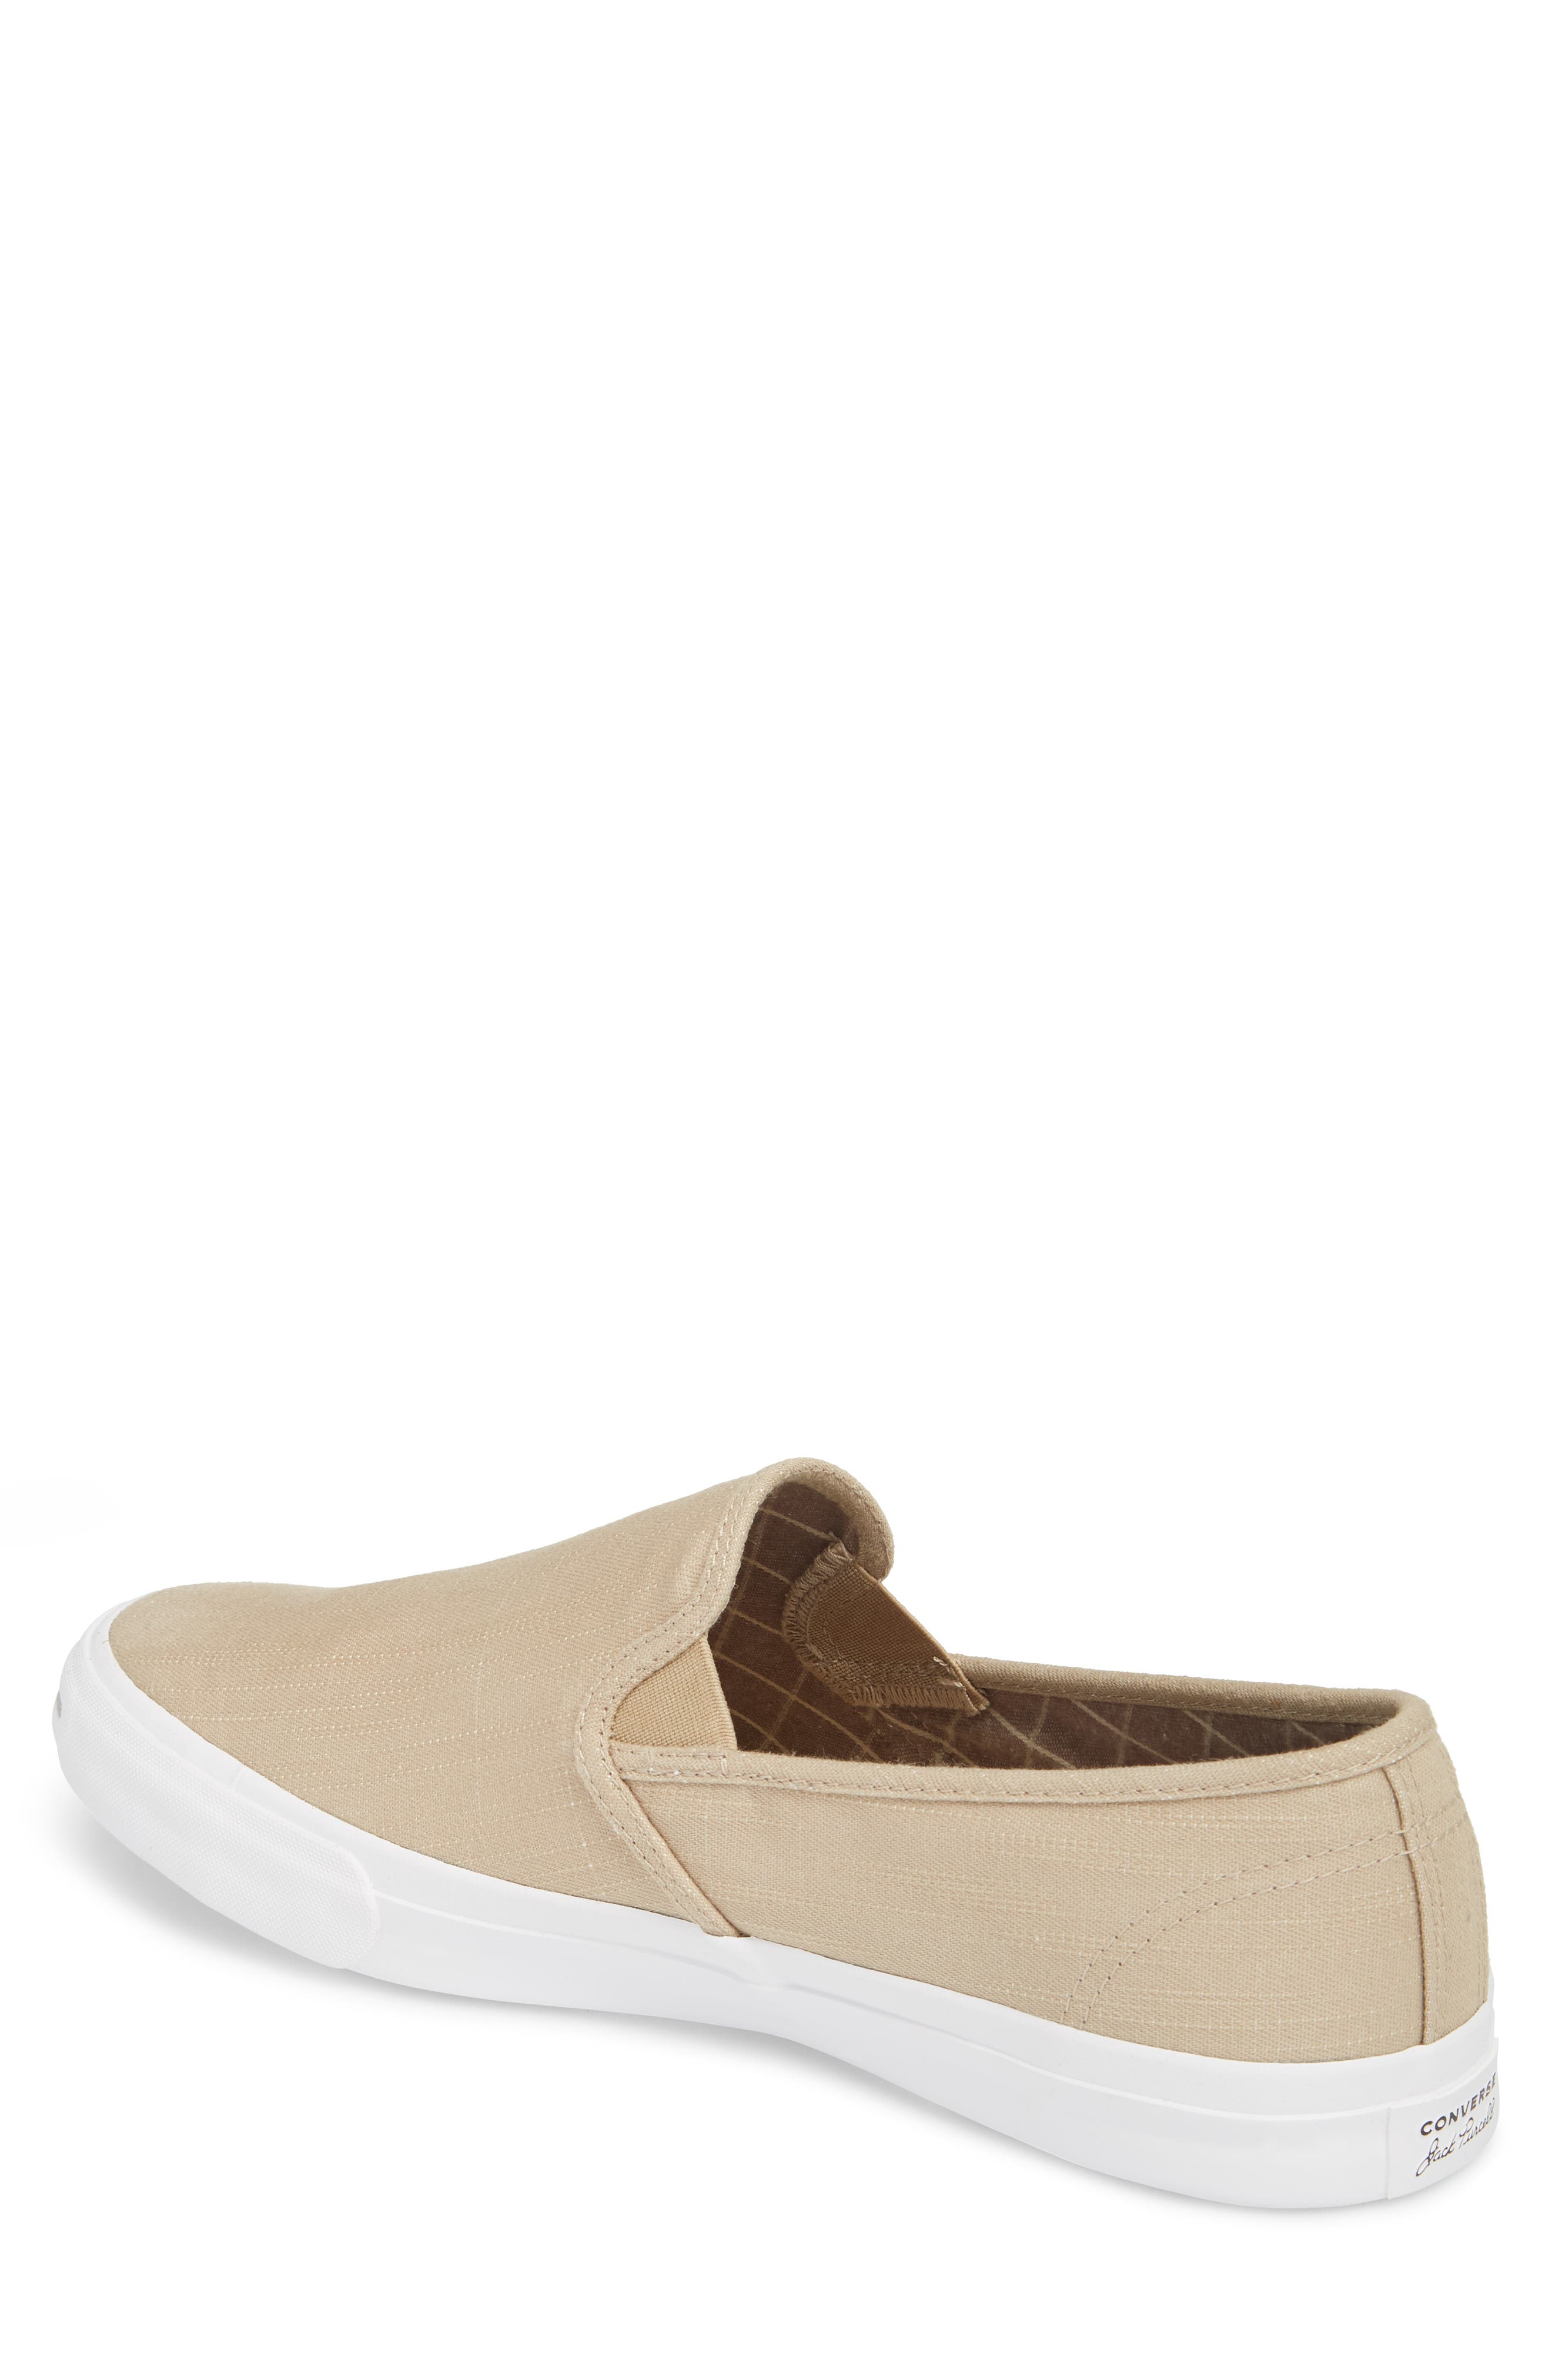 Alternate Image 2  - Converse Jack Purcell Low Profile Slip-On Sneaker (Men)